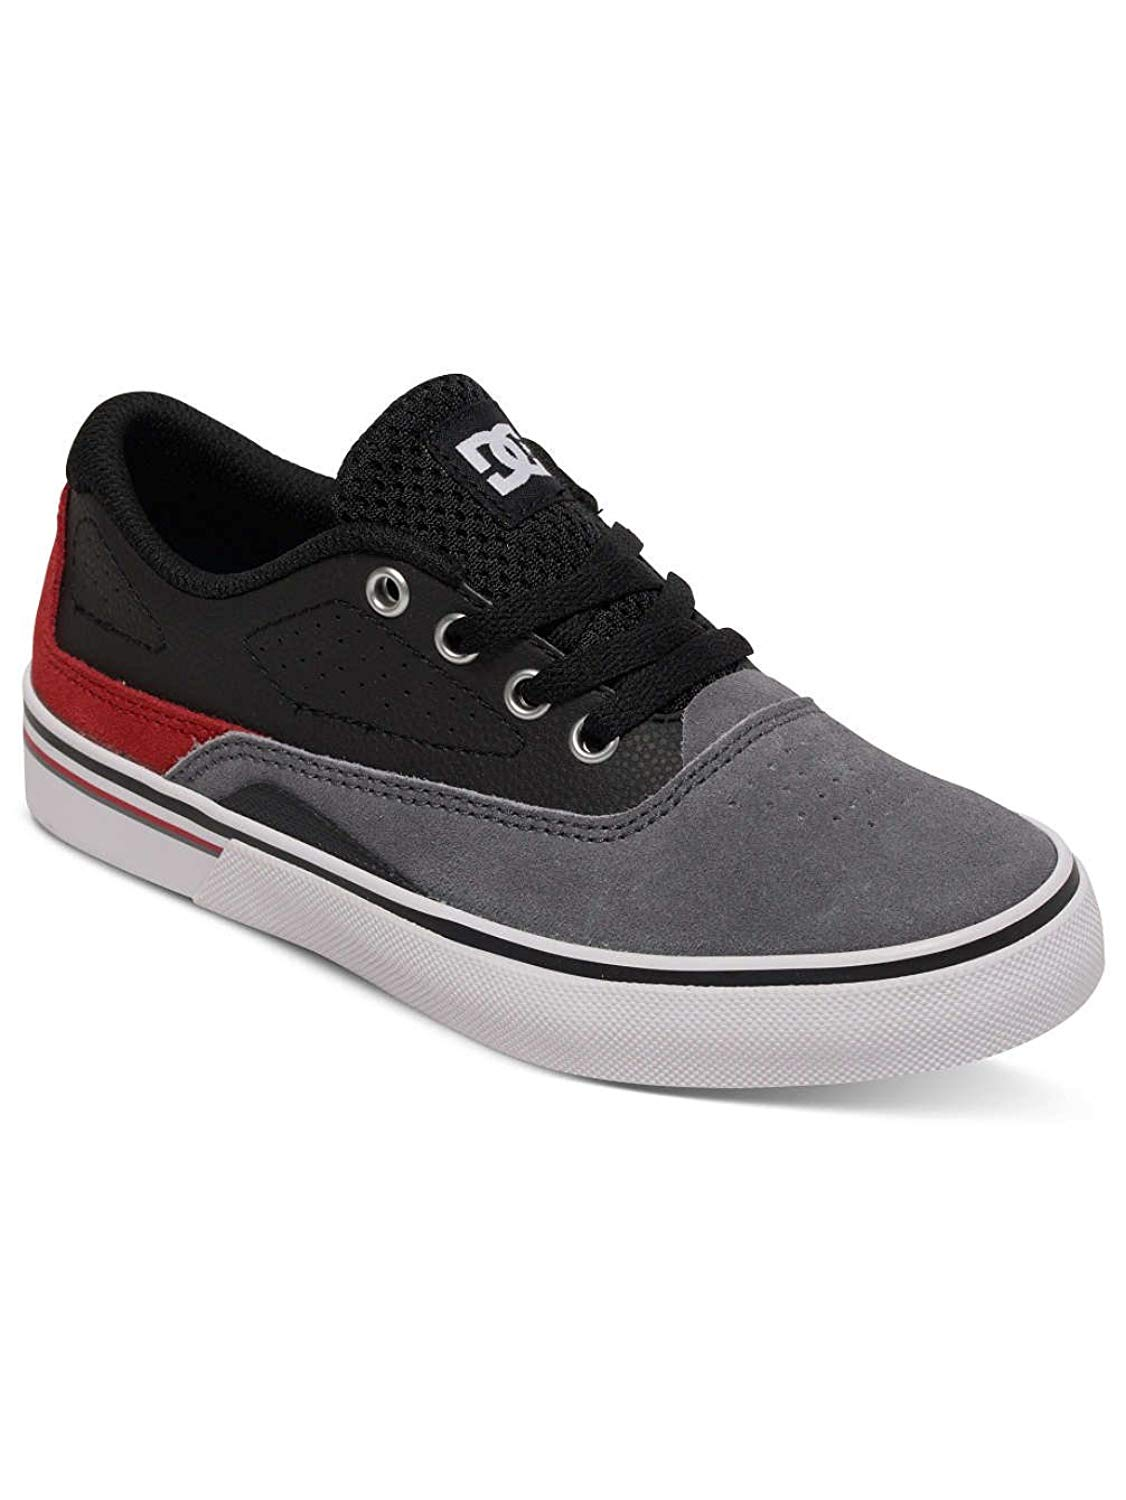 aee594538e1d2 Get Quotations · DC Boys Sultan Skate Shoe in Grey Black Red UK 5 (Kids)